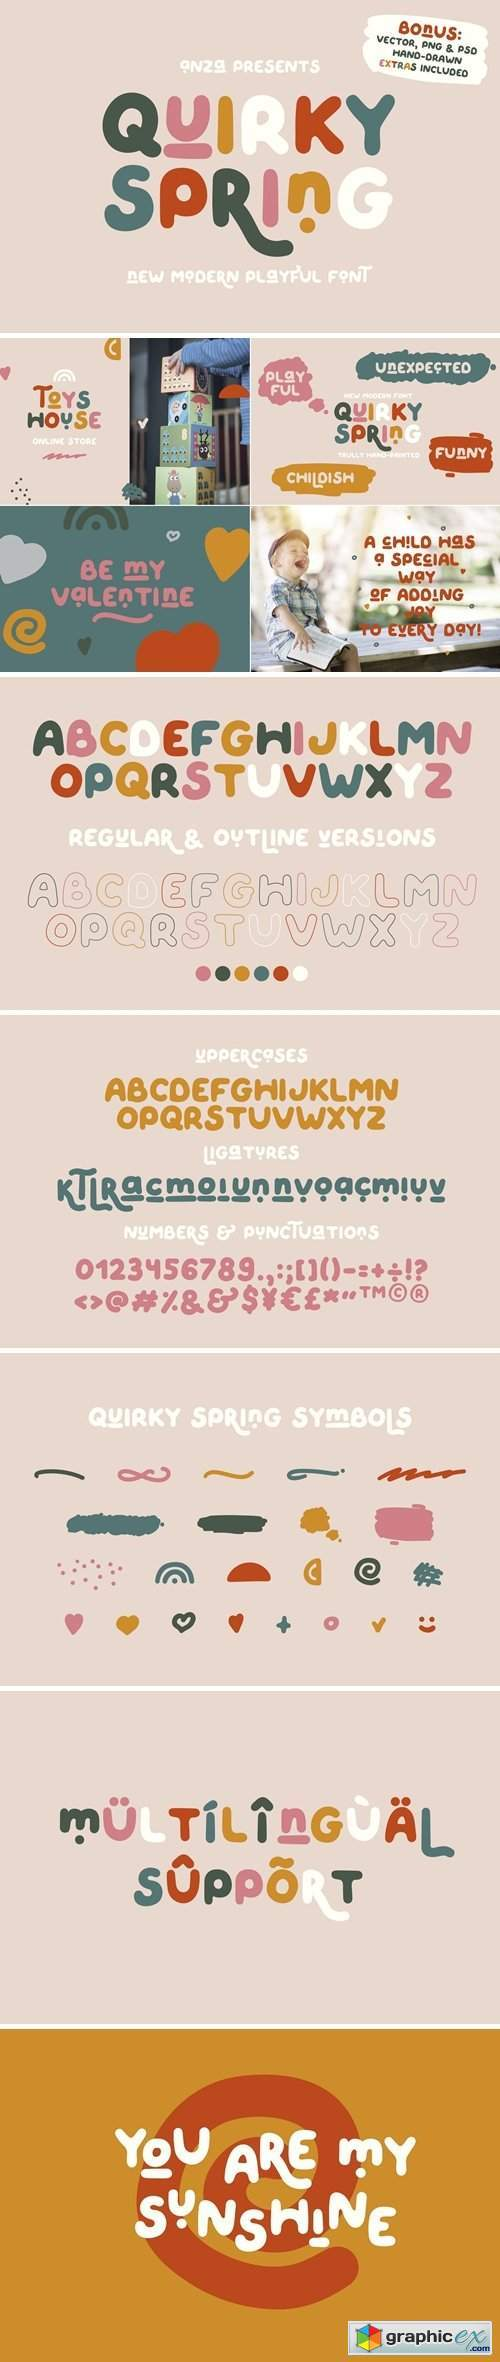 QUIRKY SPRING Playful Font Family